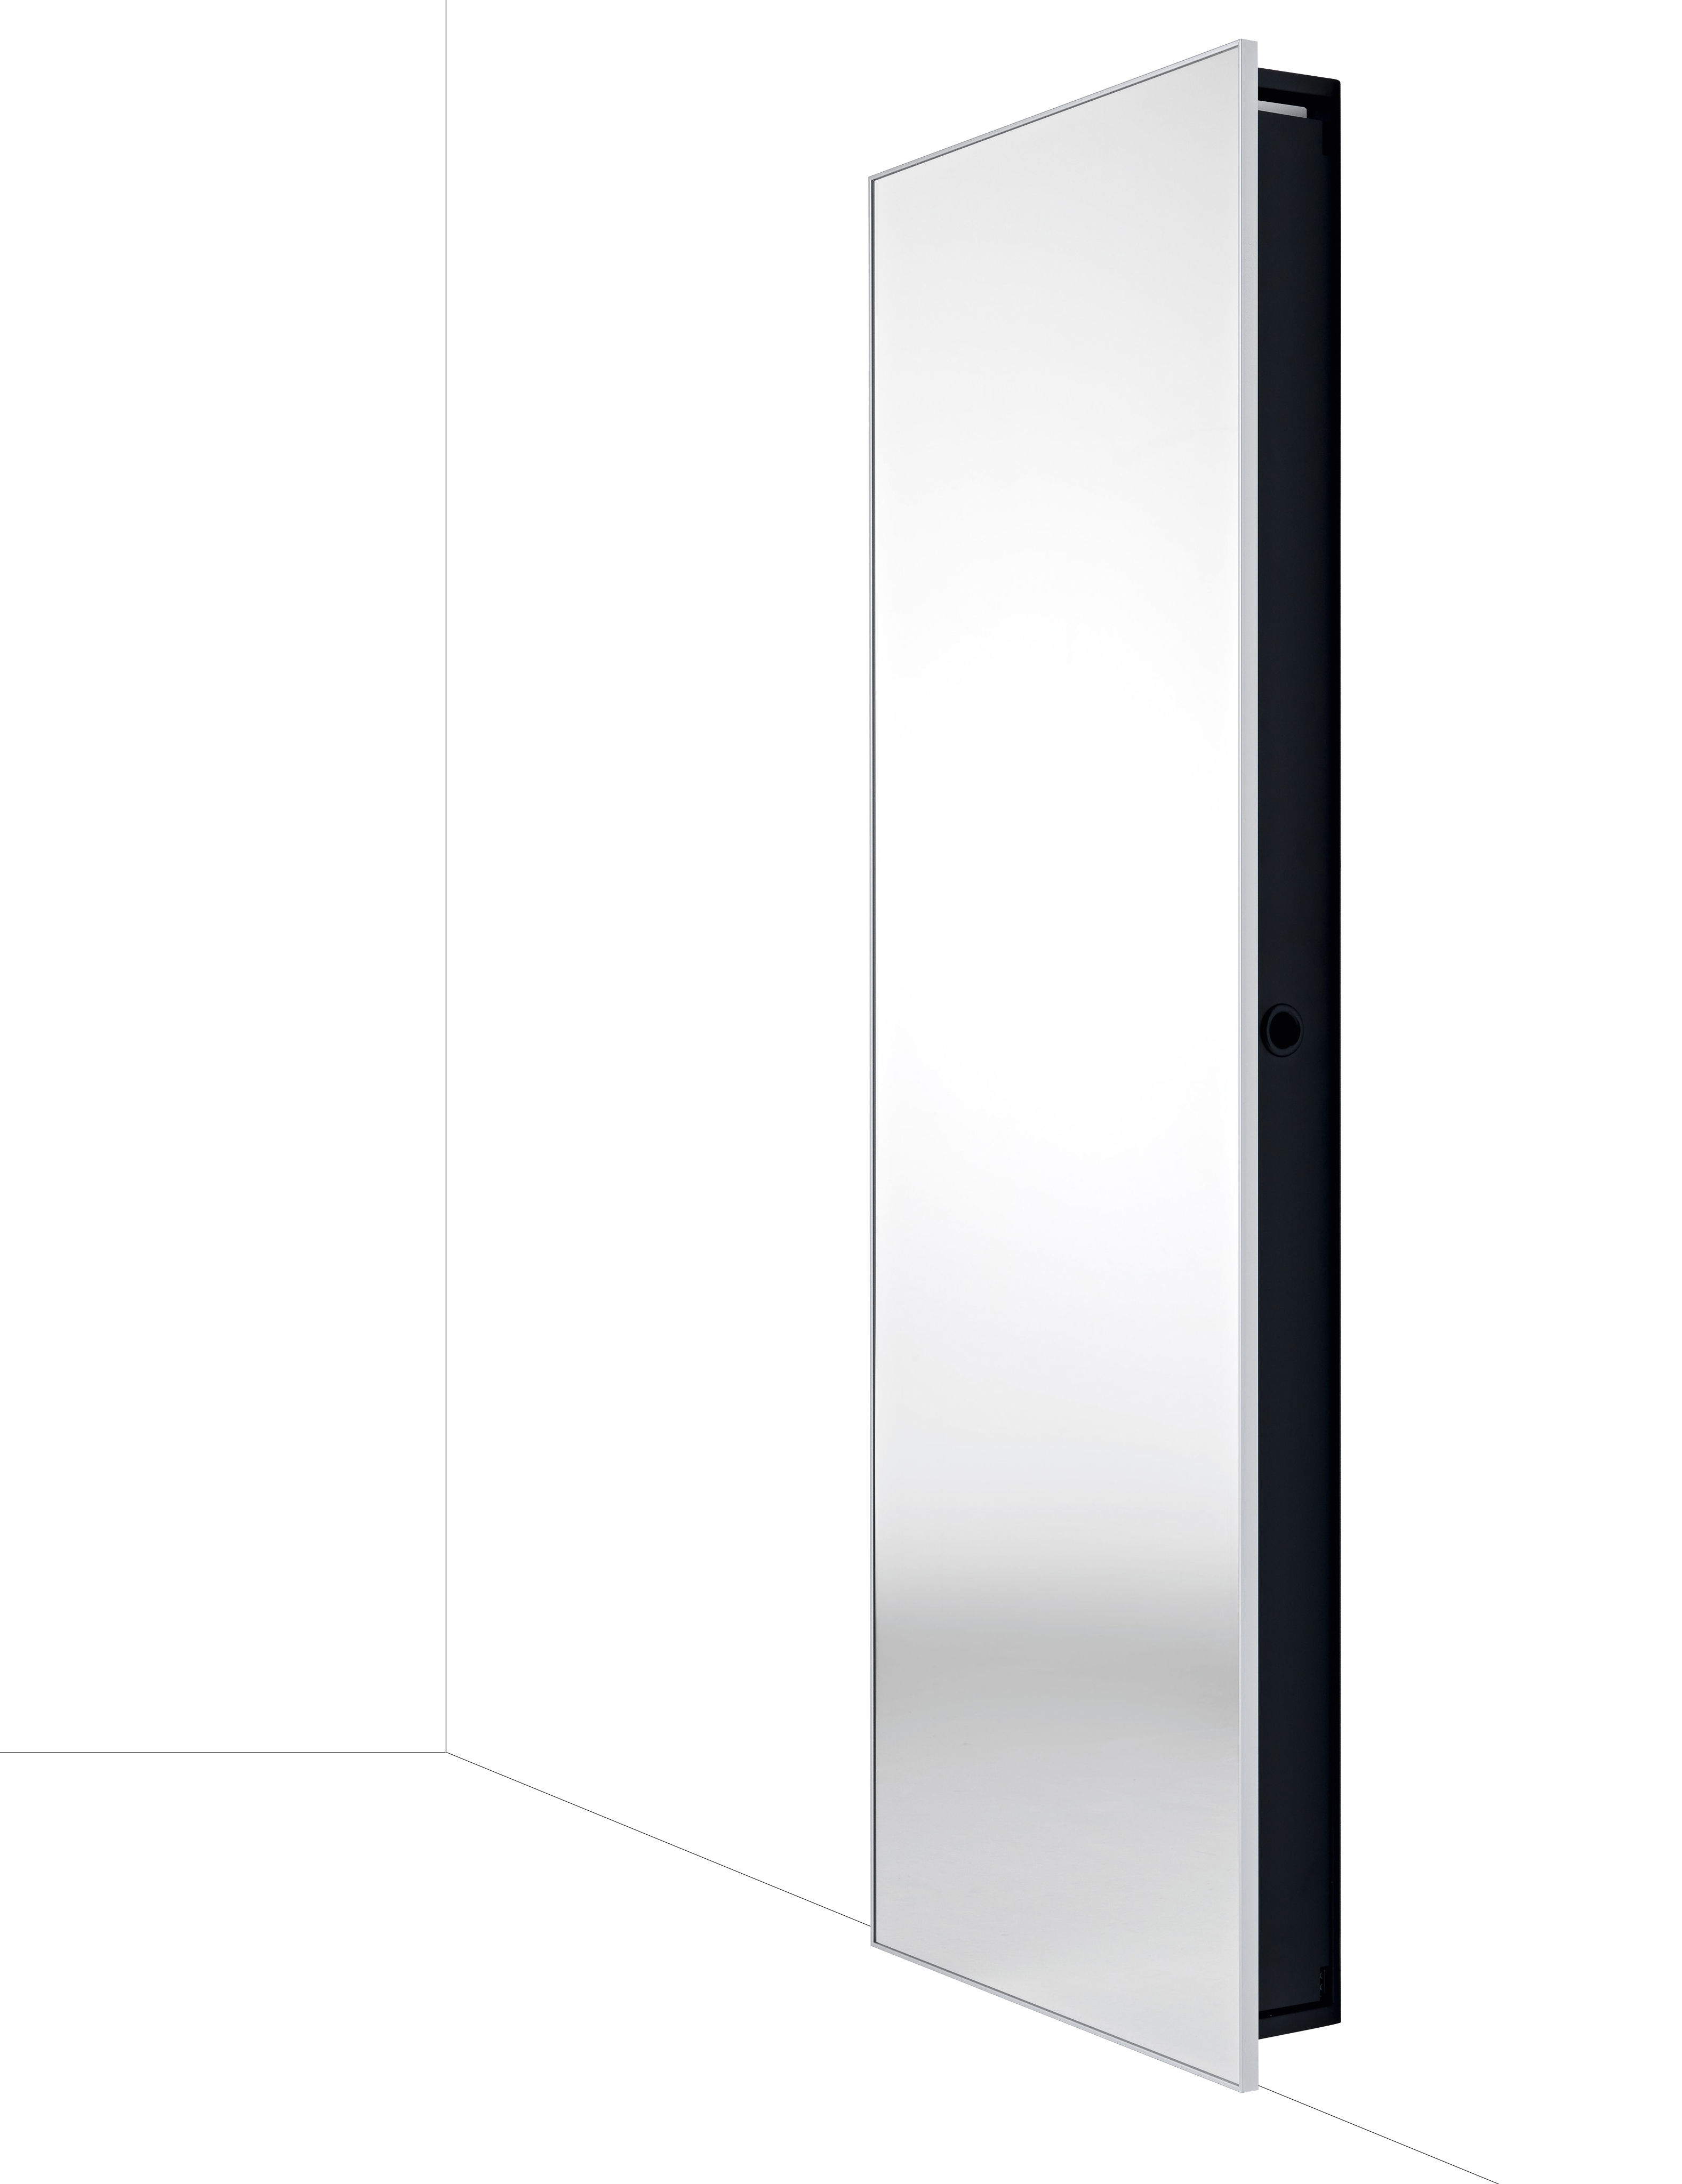 Furniture - Mirrors - Backstage Wardrobe - / Mirror - 64 x 192 cm by Horm - W 64 x H 192 cm - Mirror / Black plate - Aluminium, Mirror, Painted steel